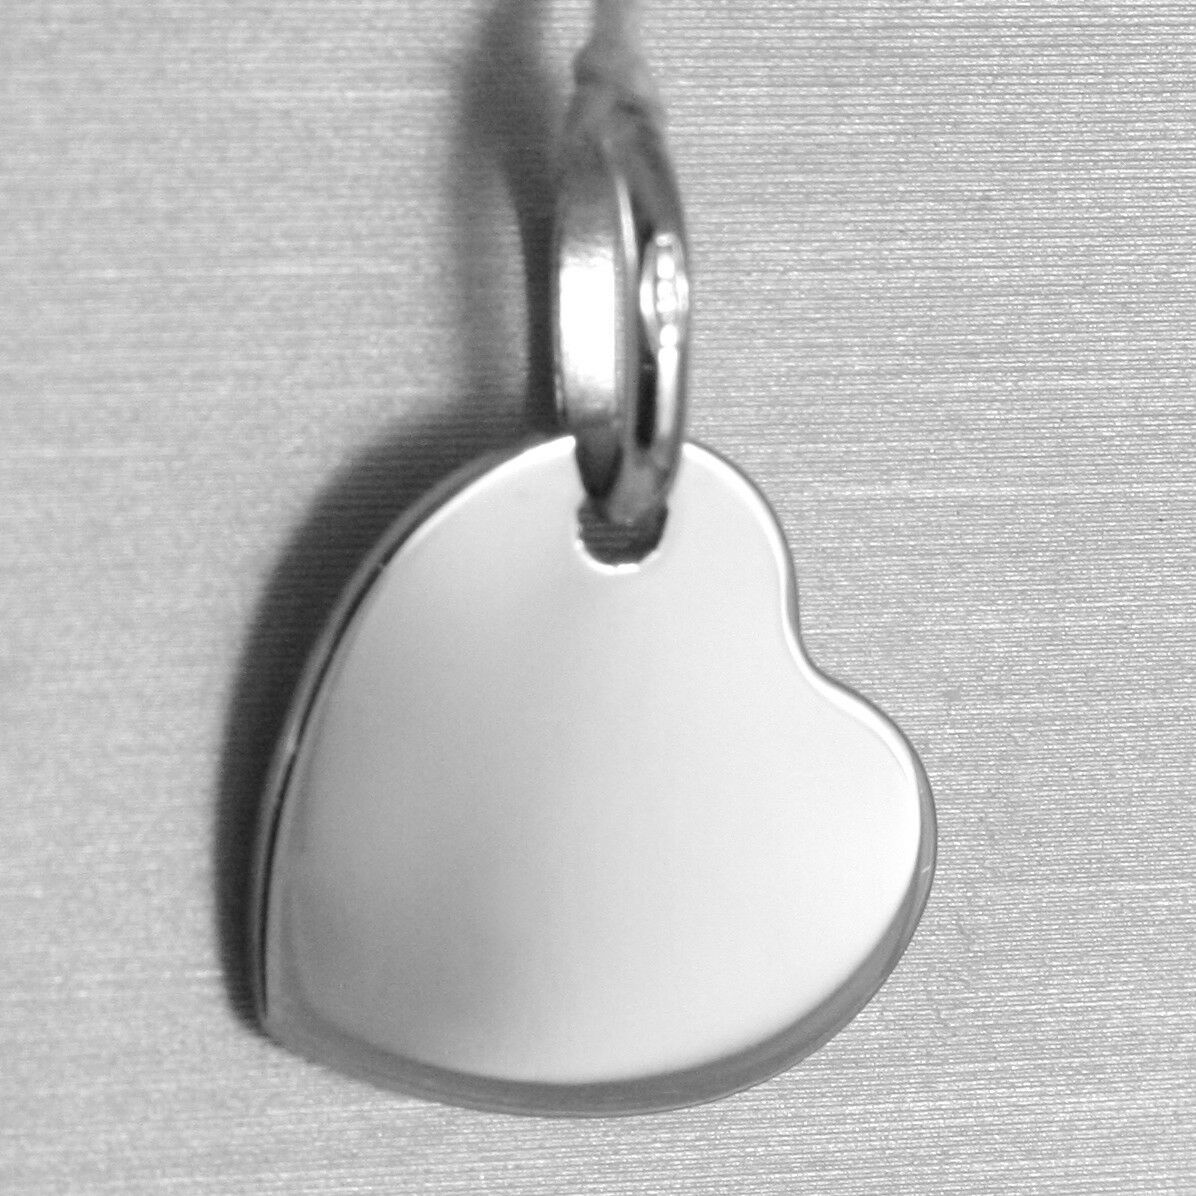 18K WHITE GOLD HEART ENGRAVABLE CHARM PENDANT 13 MM FLAT SMOOTH MADE IN ITALY